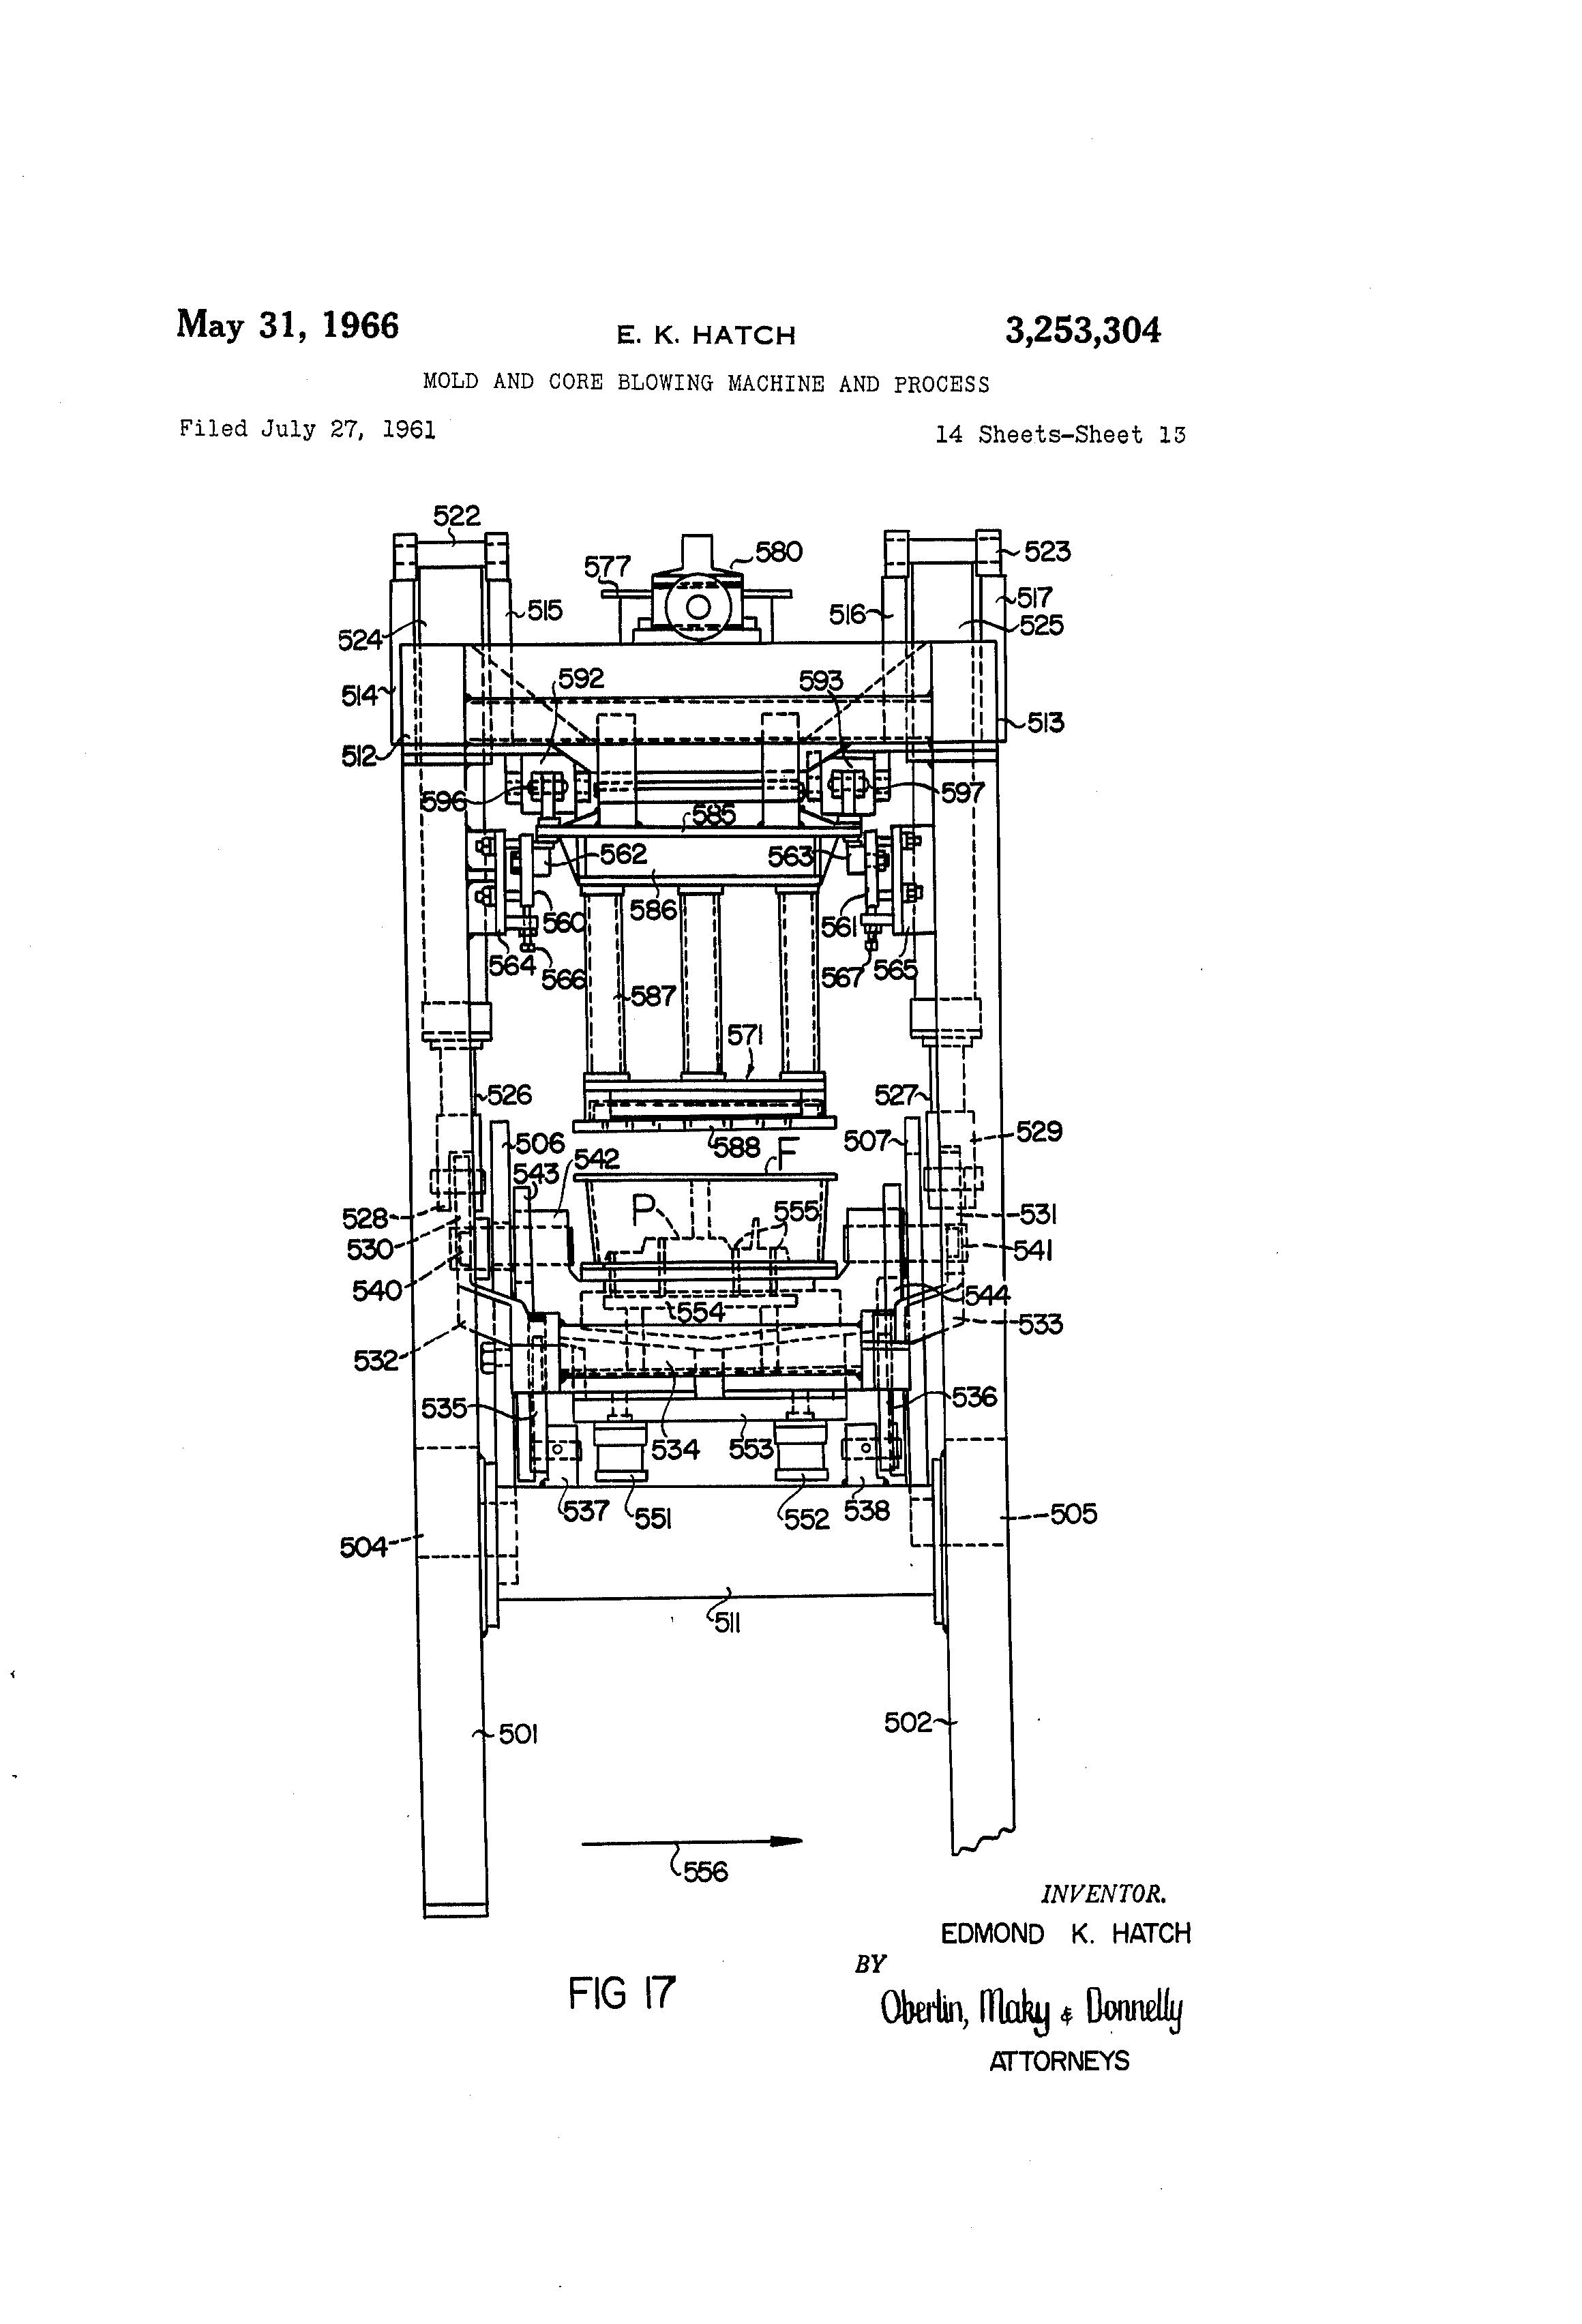 US3253304 12 patent us3253304 mold and core blowing machine and process  at n-0.co